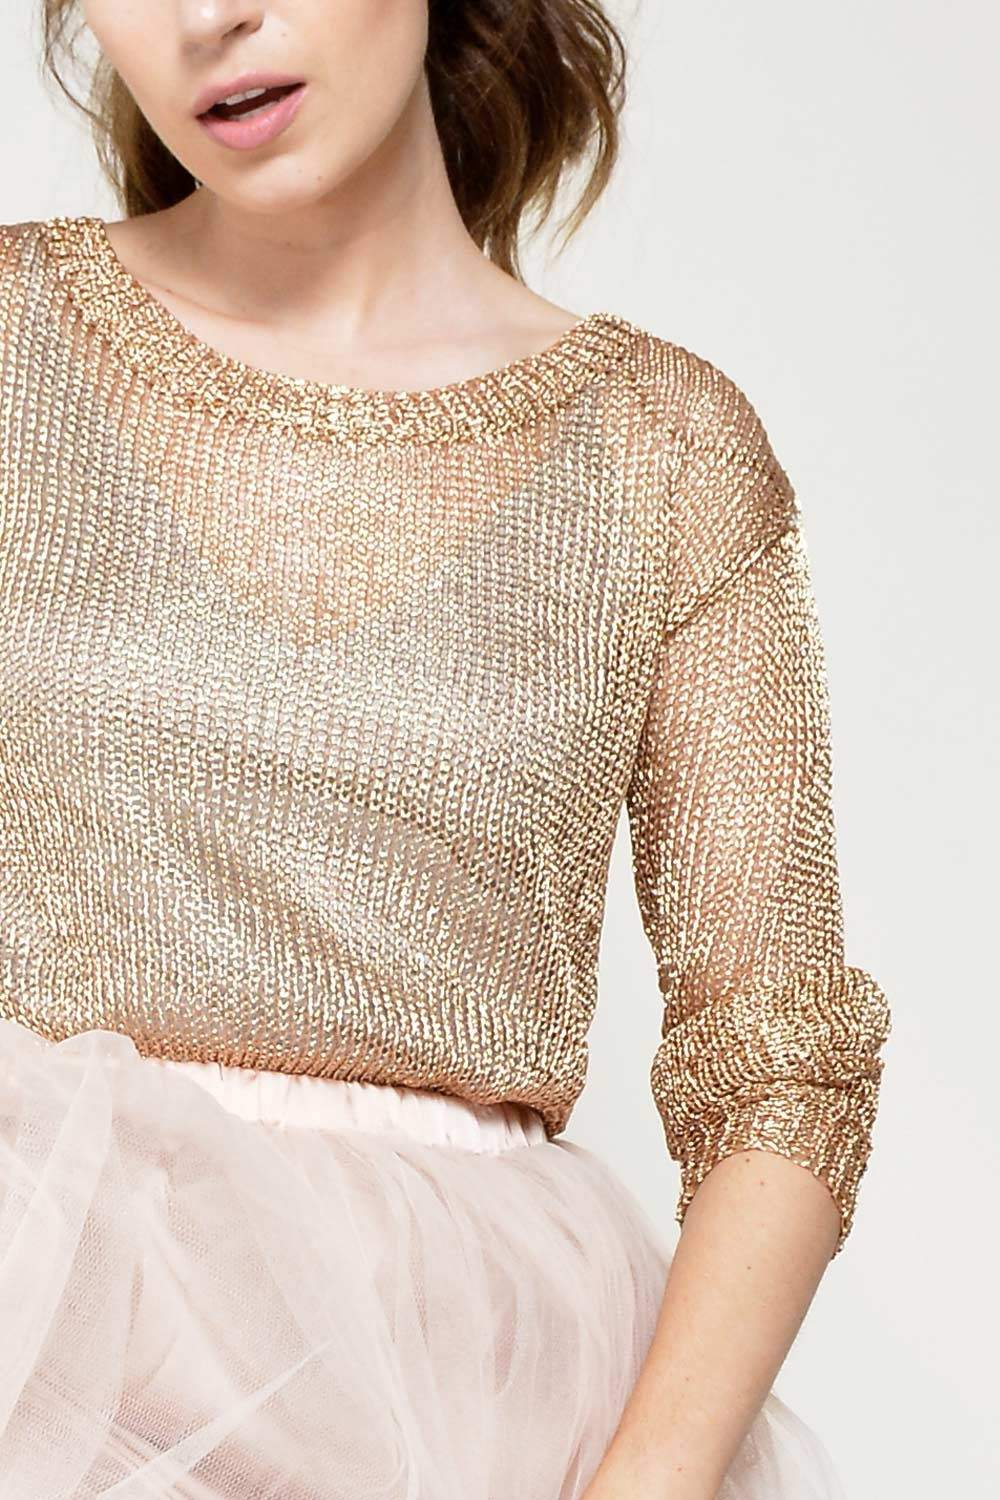 Glamorous Tina Loose Knit Sweater in Rose Gold | iCLOTHING